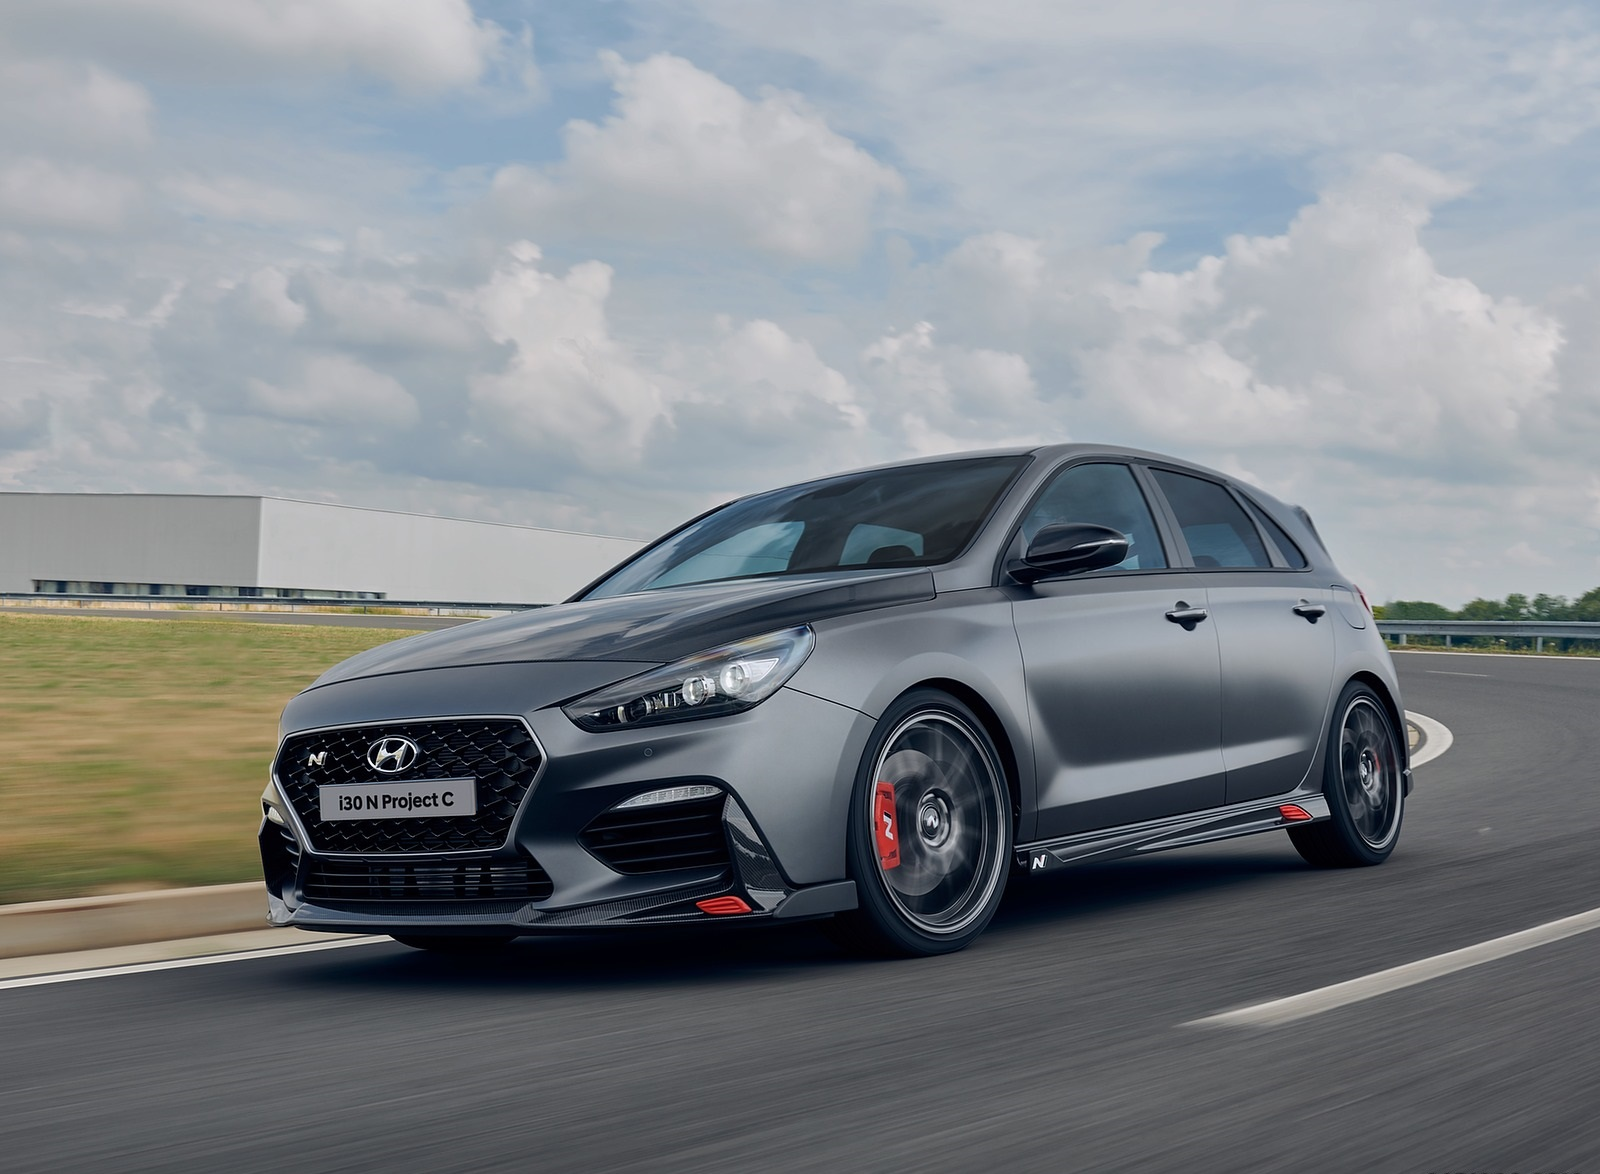 2020 Hyundai I30 N Project C Wallpapers 31 Hd Images Newcarcars